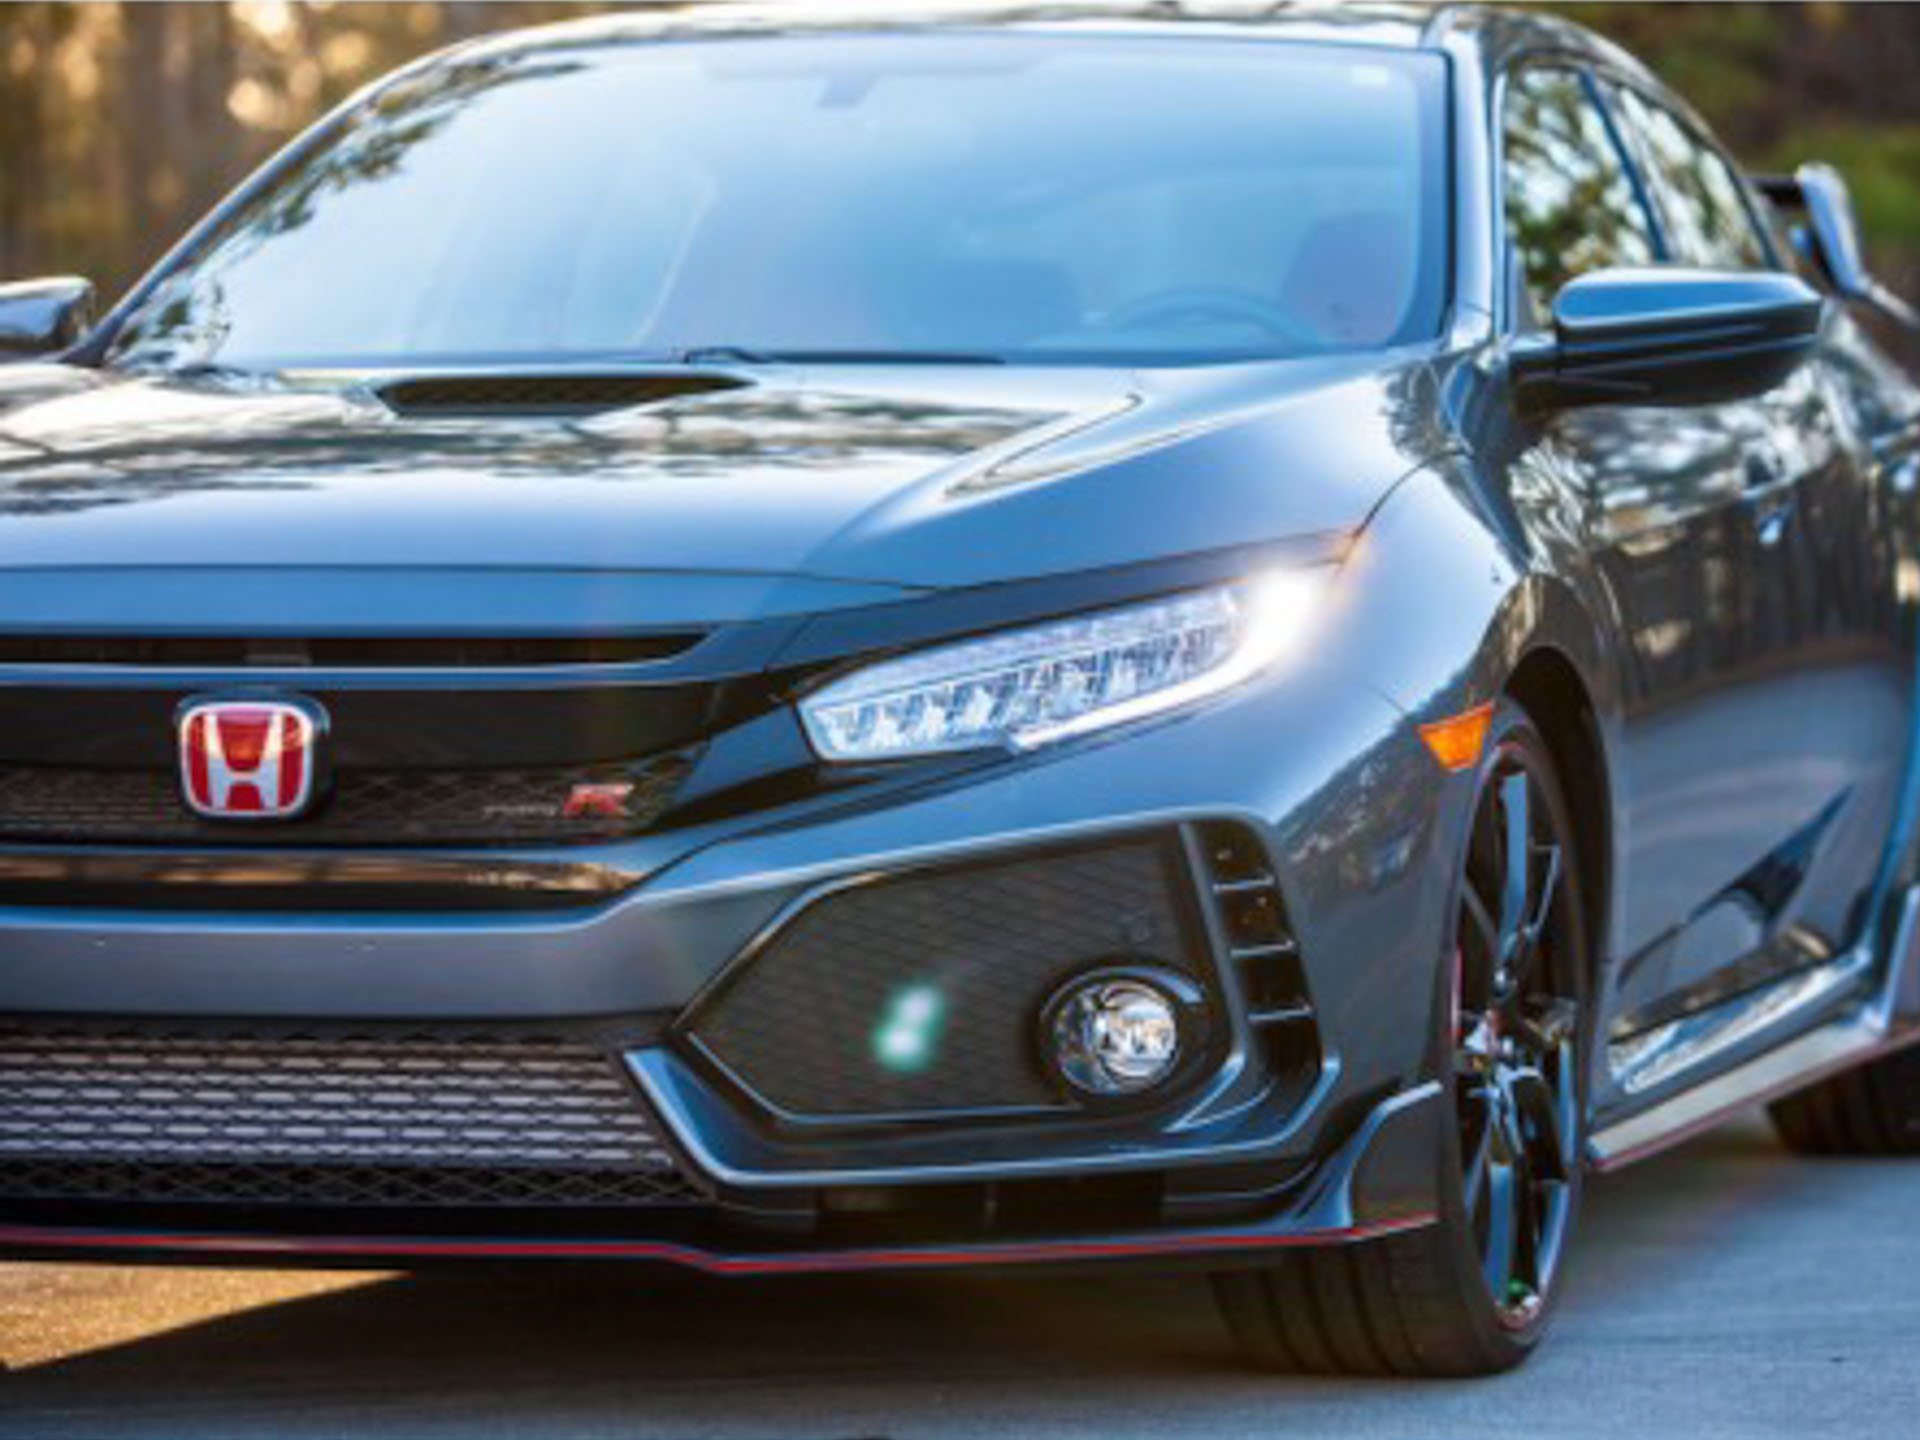 FK8 Civic TYPE R ECU Jailbreak 7 FK8 Civic TYPE R ECU Jailbreak ECUs made by Bosch for Honda cannot be programmed over OBDII from factory, which is why they must be jailbroken.